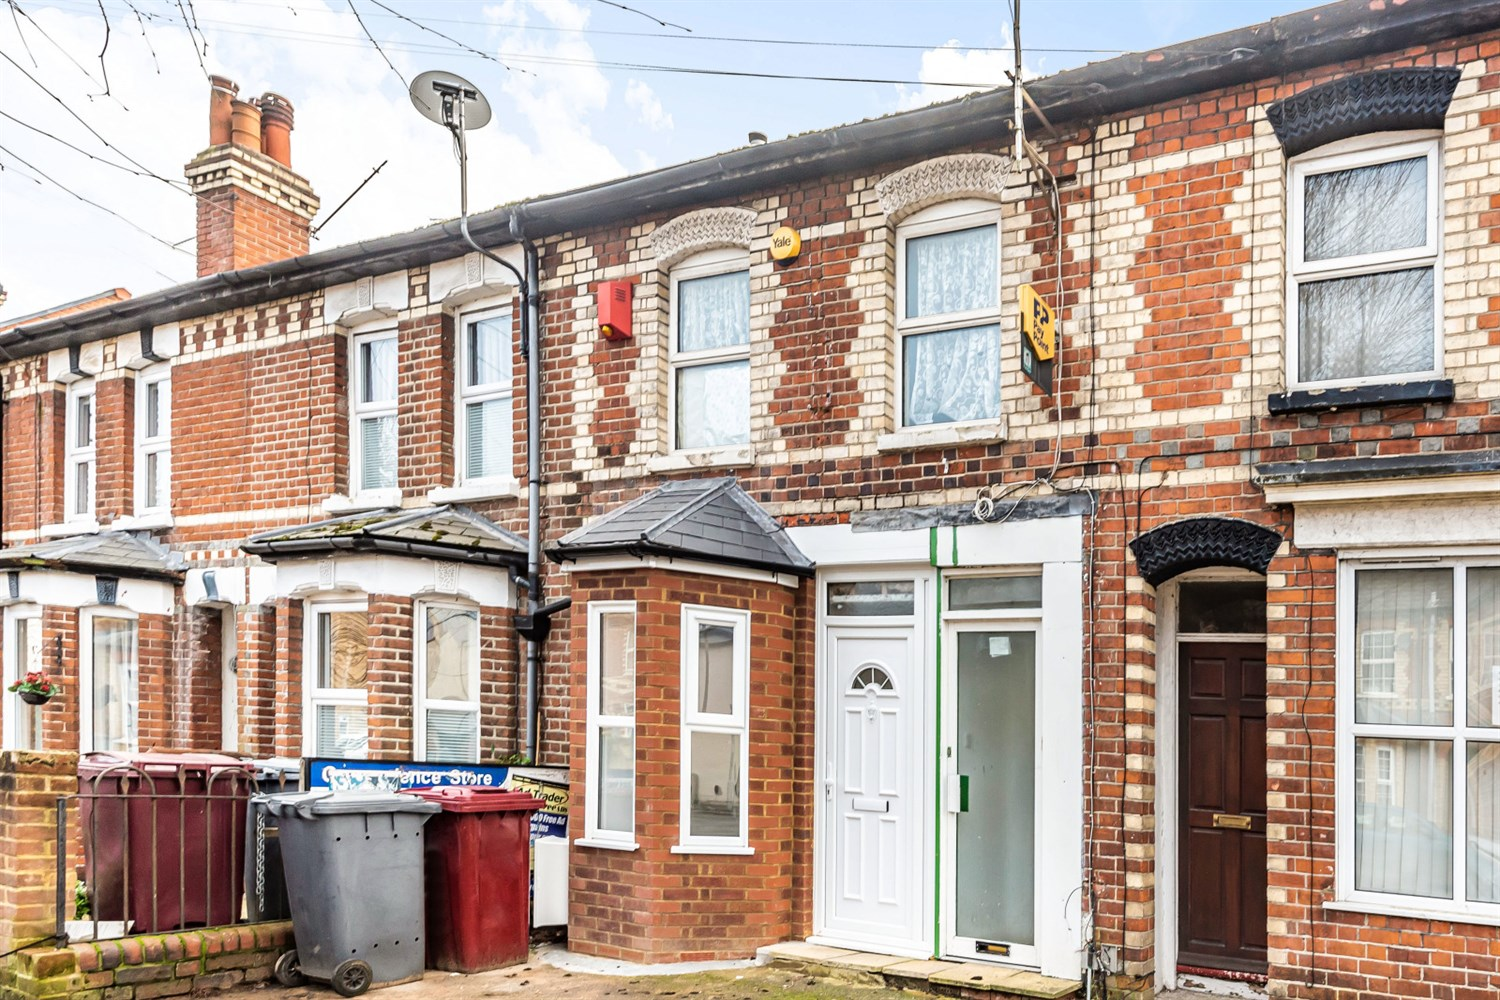 35a Prince Of Wales Avenue, Reading, RG30 2UH